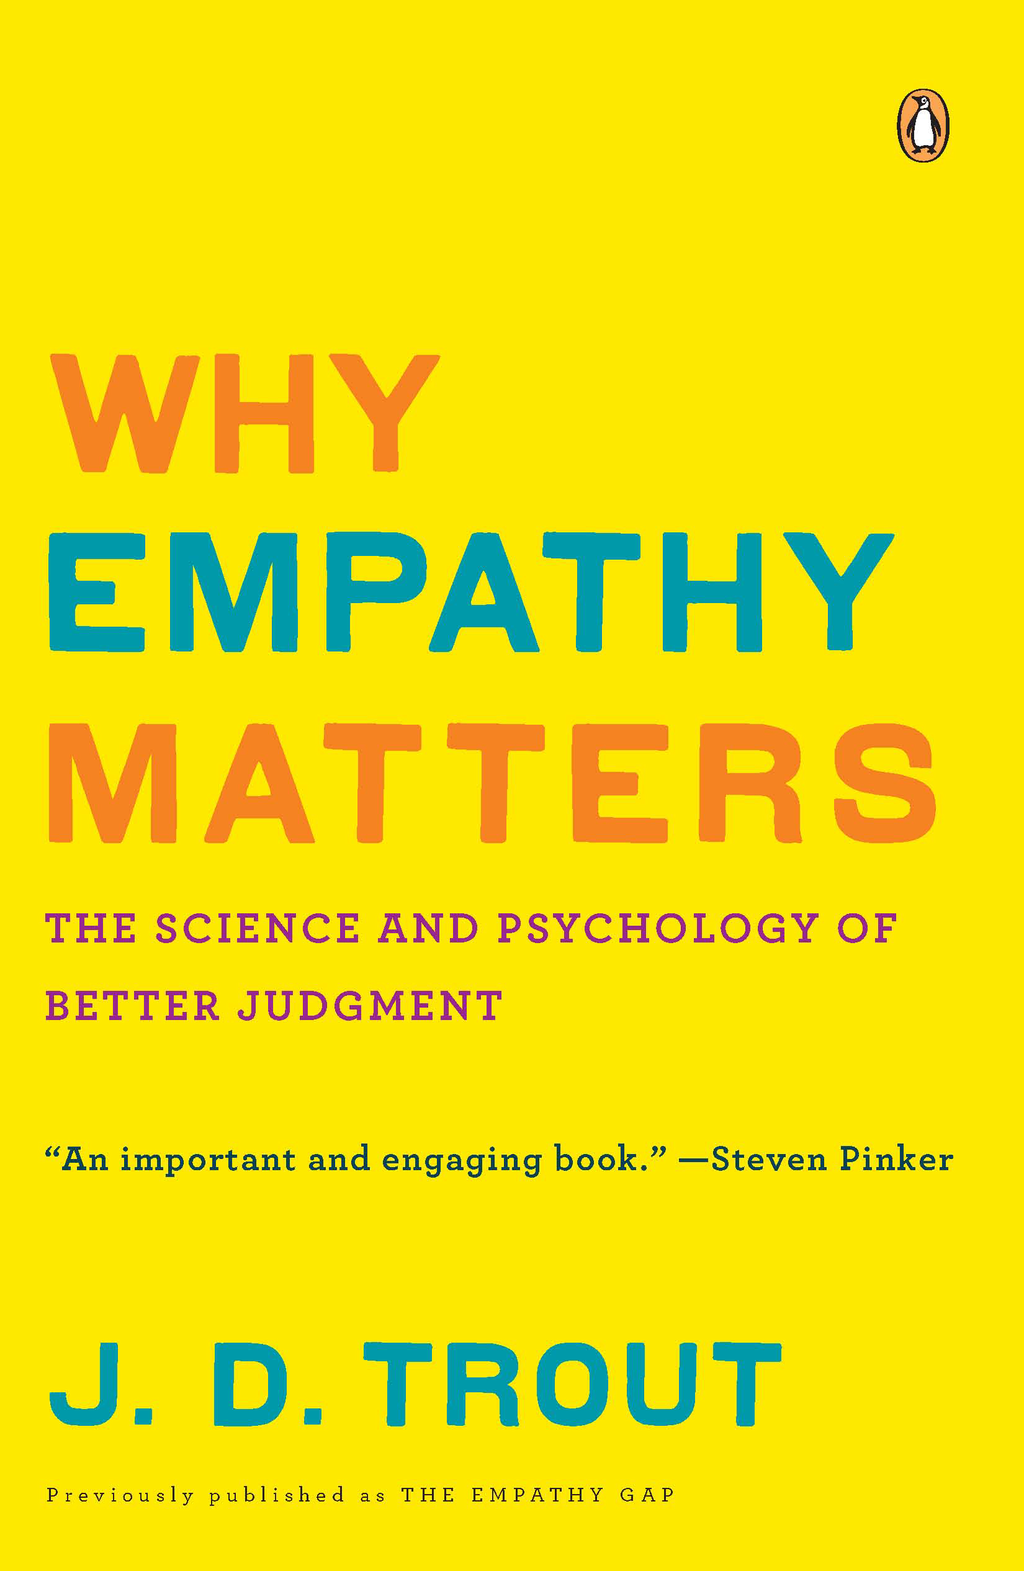 Why Empathy Matters By: J. D. Trout